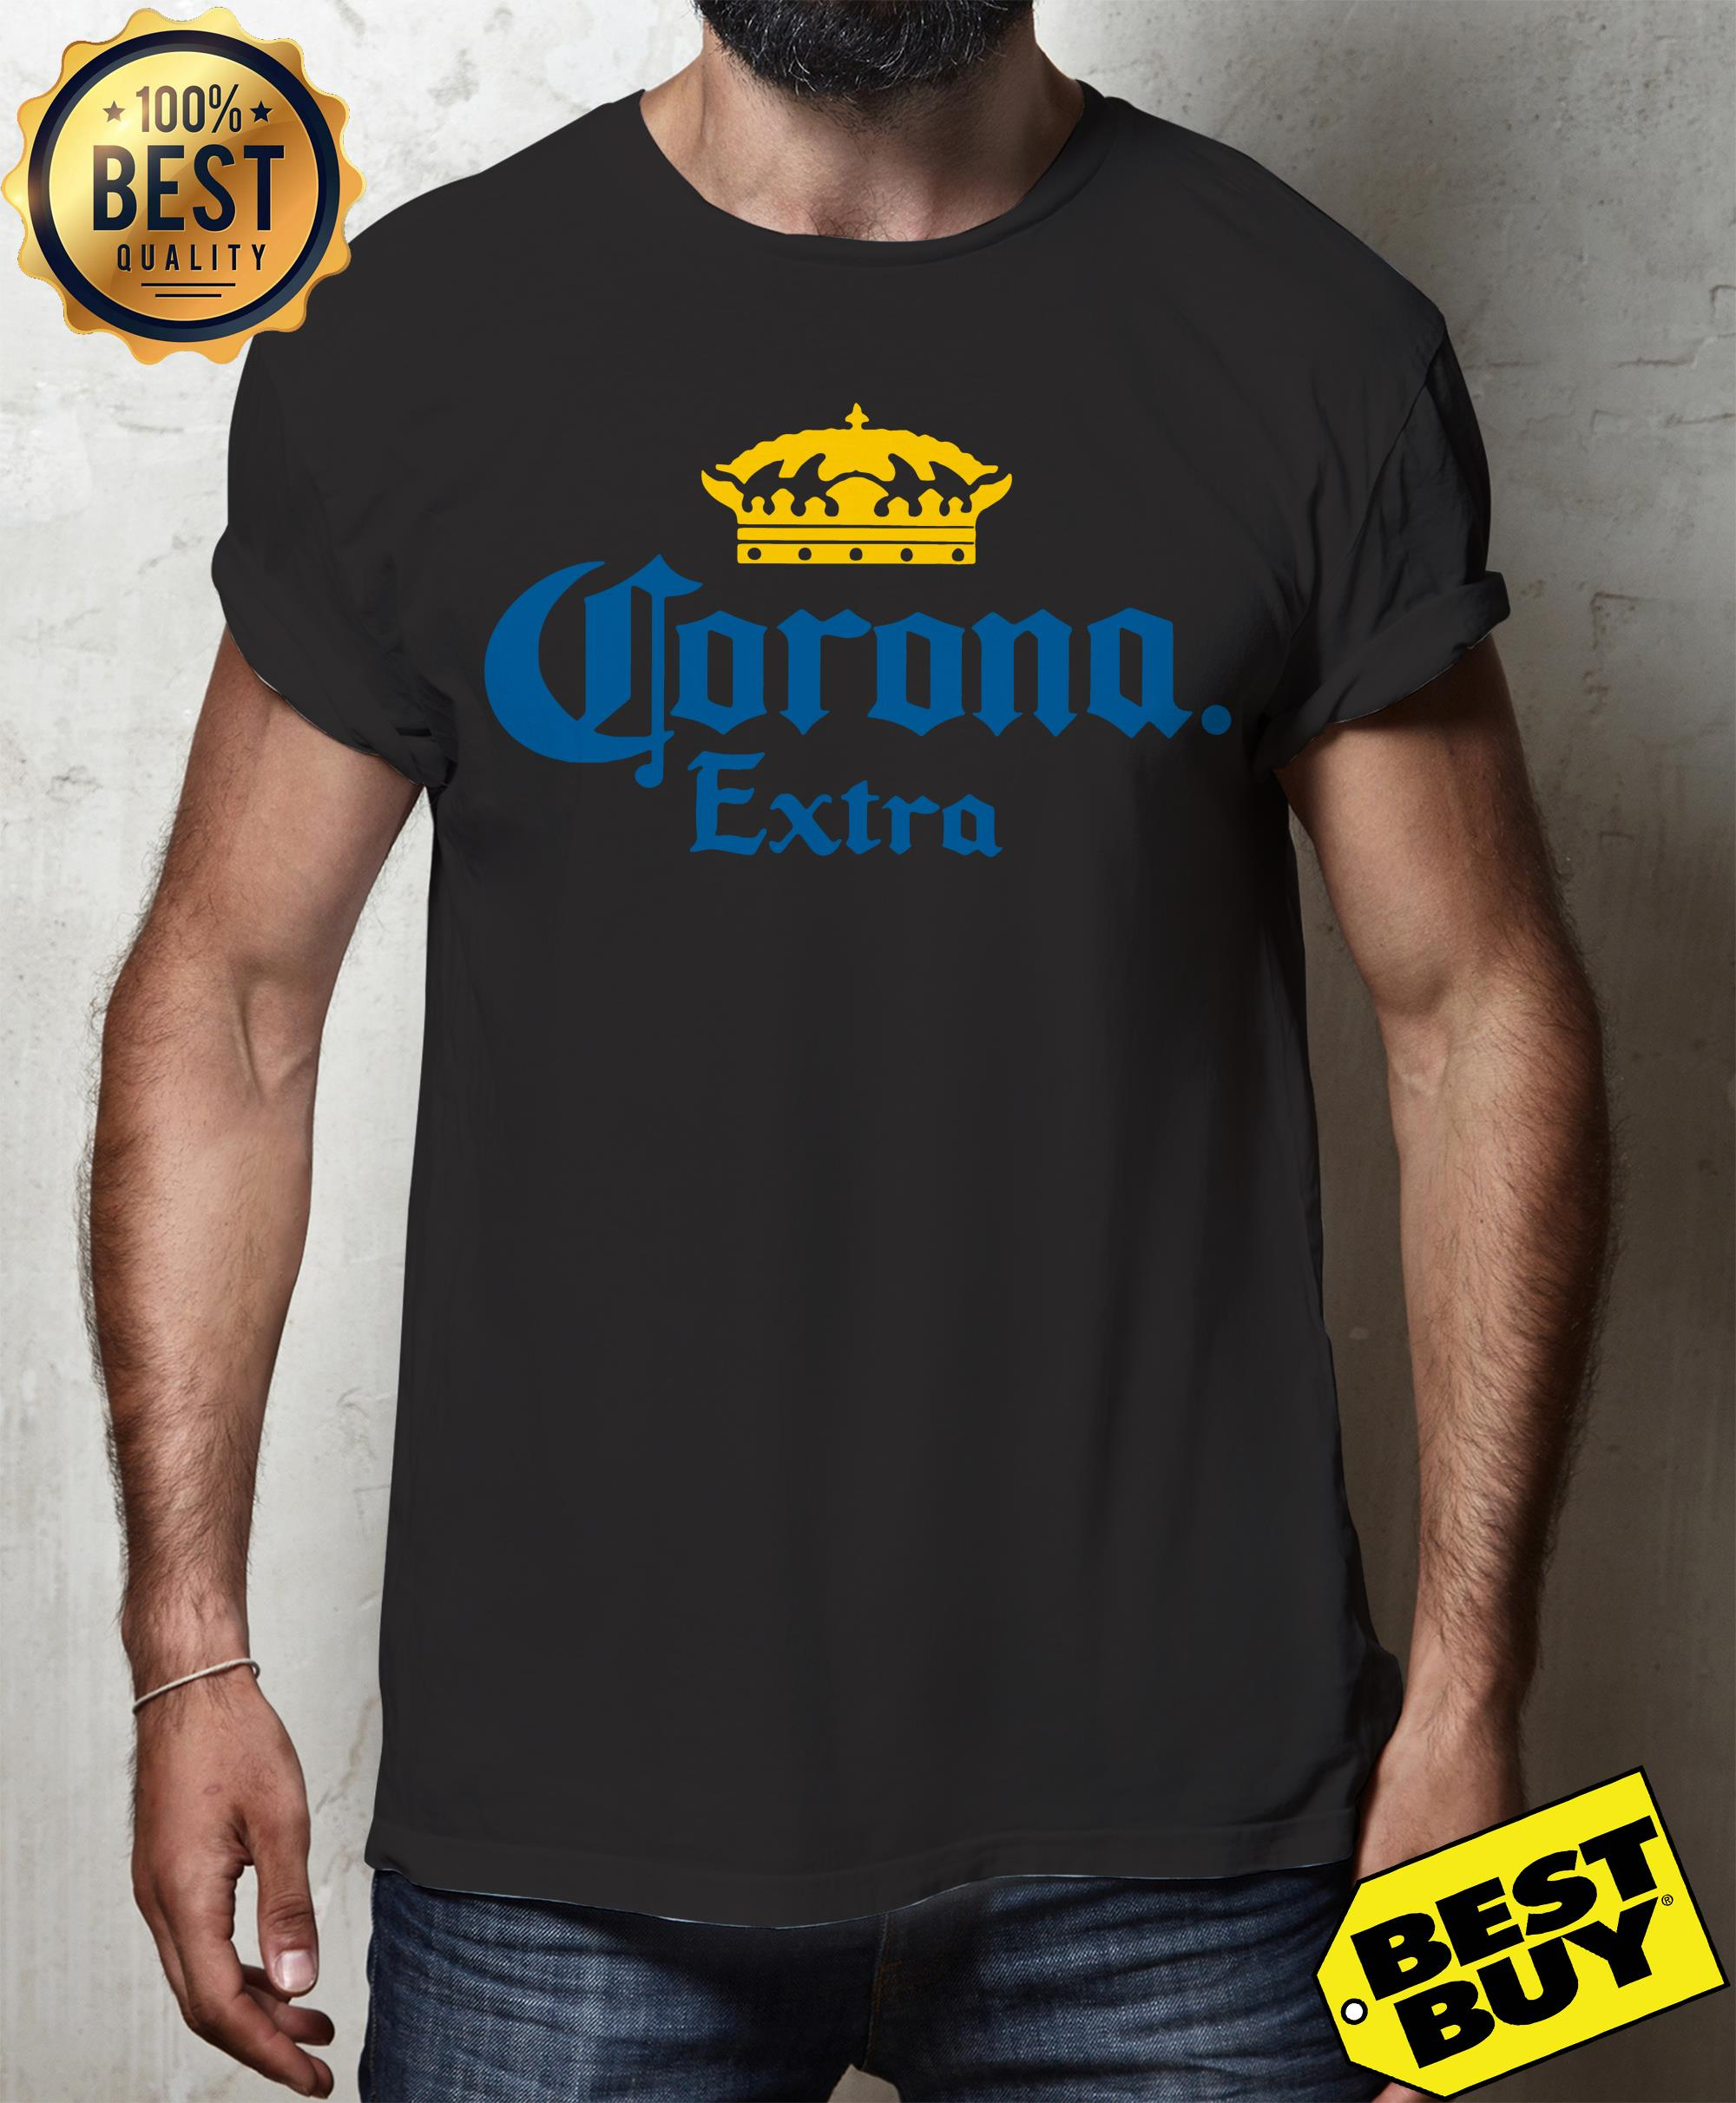 Corona Extra Men's Beer Crown Logo v-neck